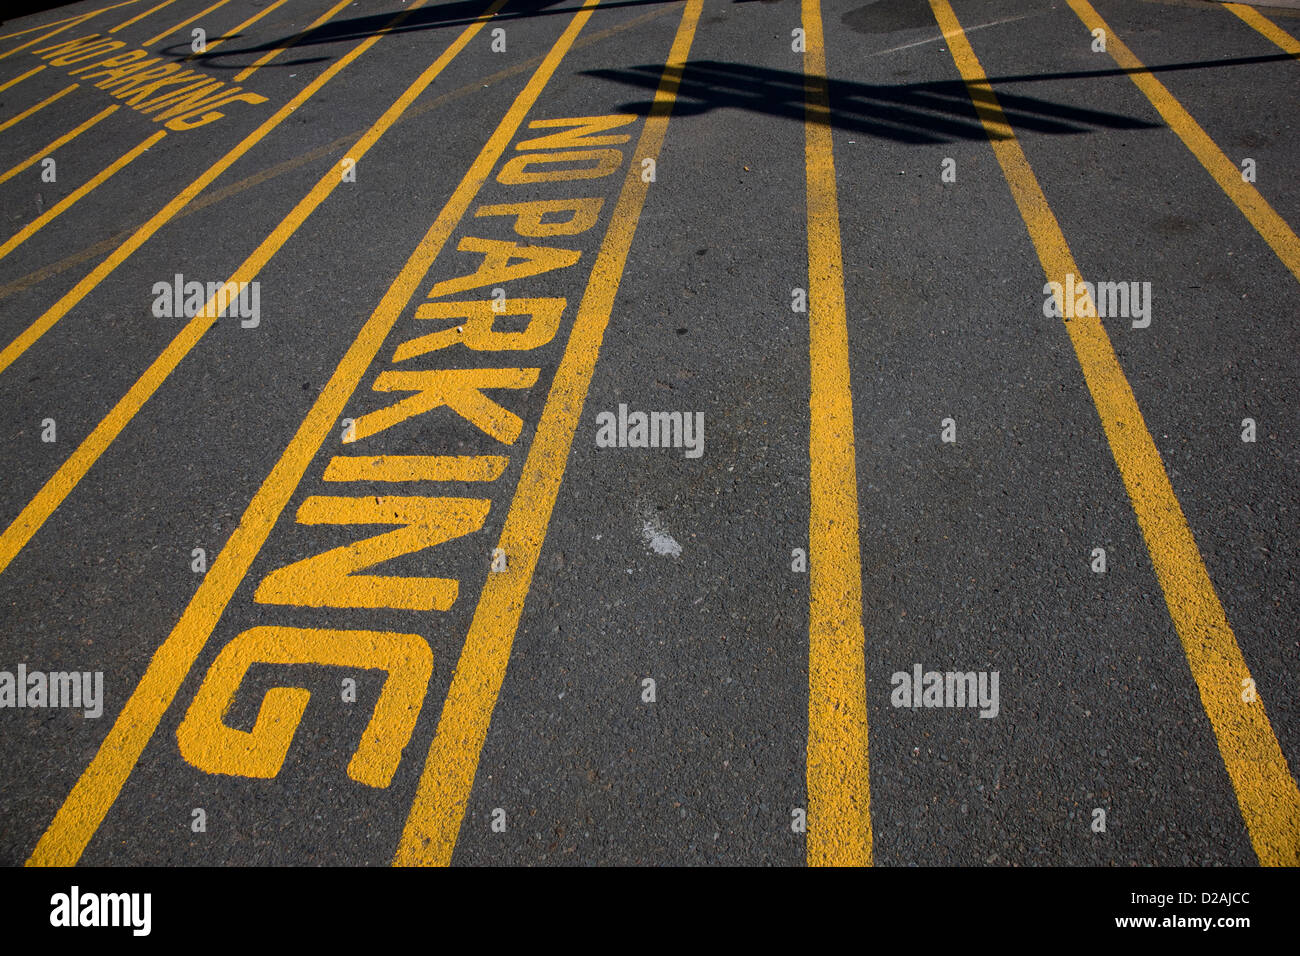 Yellow lines and road markings indicating 'No Parking' in Halifax, Nova Scotia - Stock Image